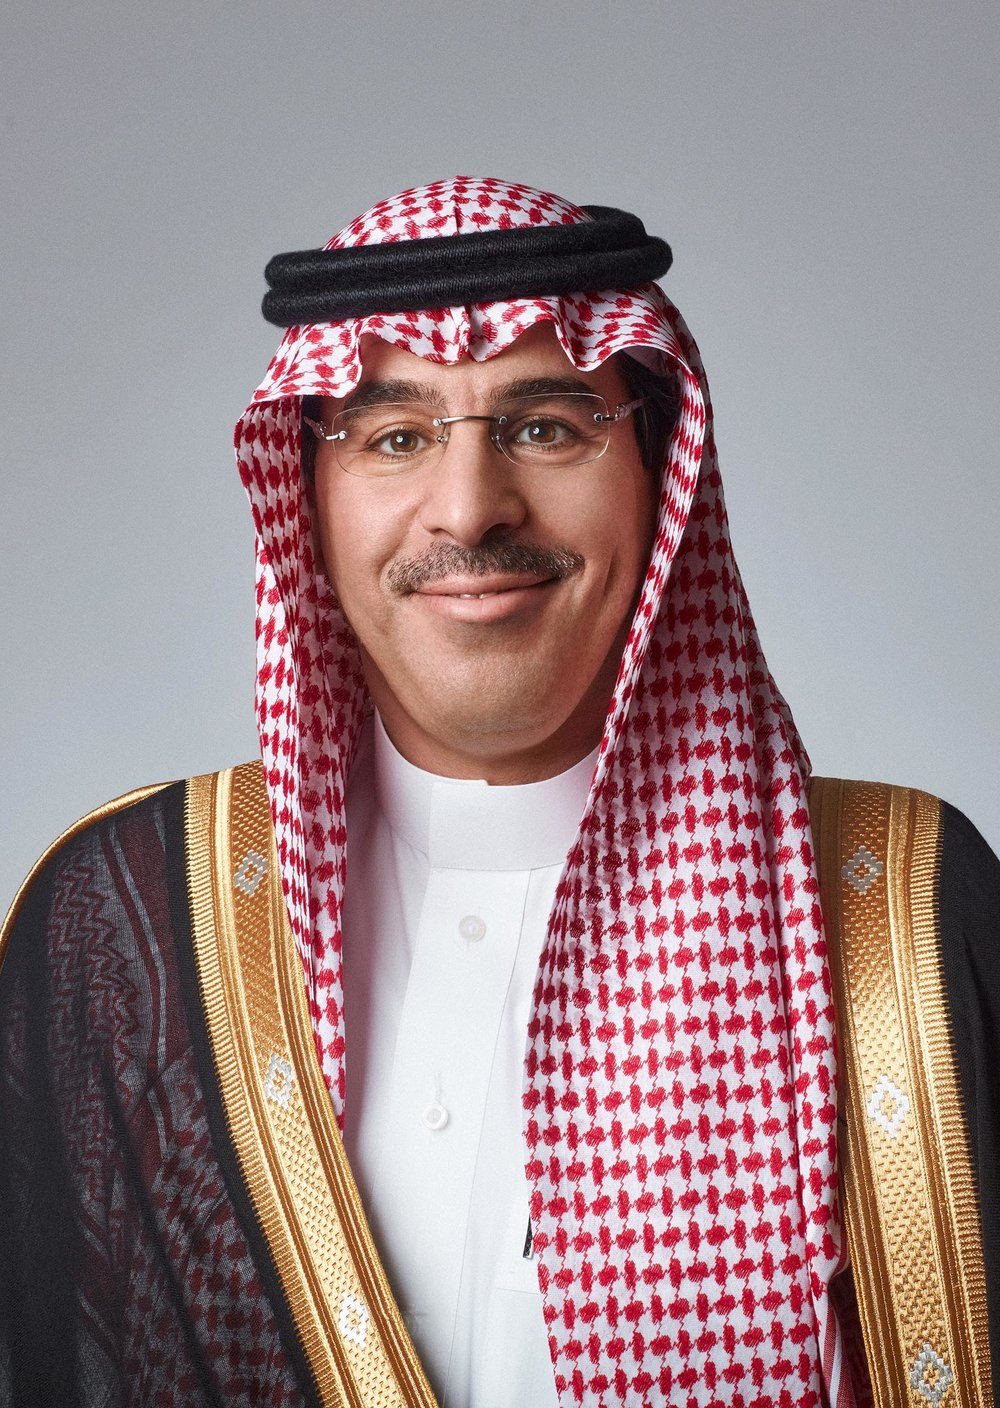 Dr. Awwad S. Alawwad - Minister of Culture and Information